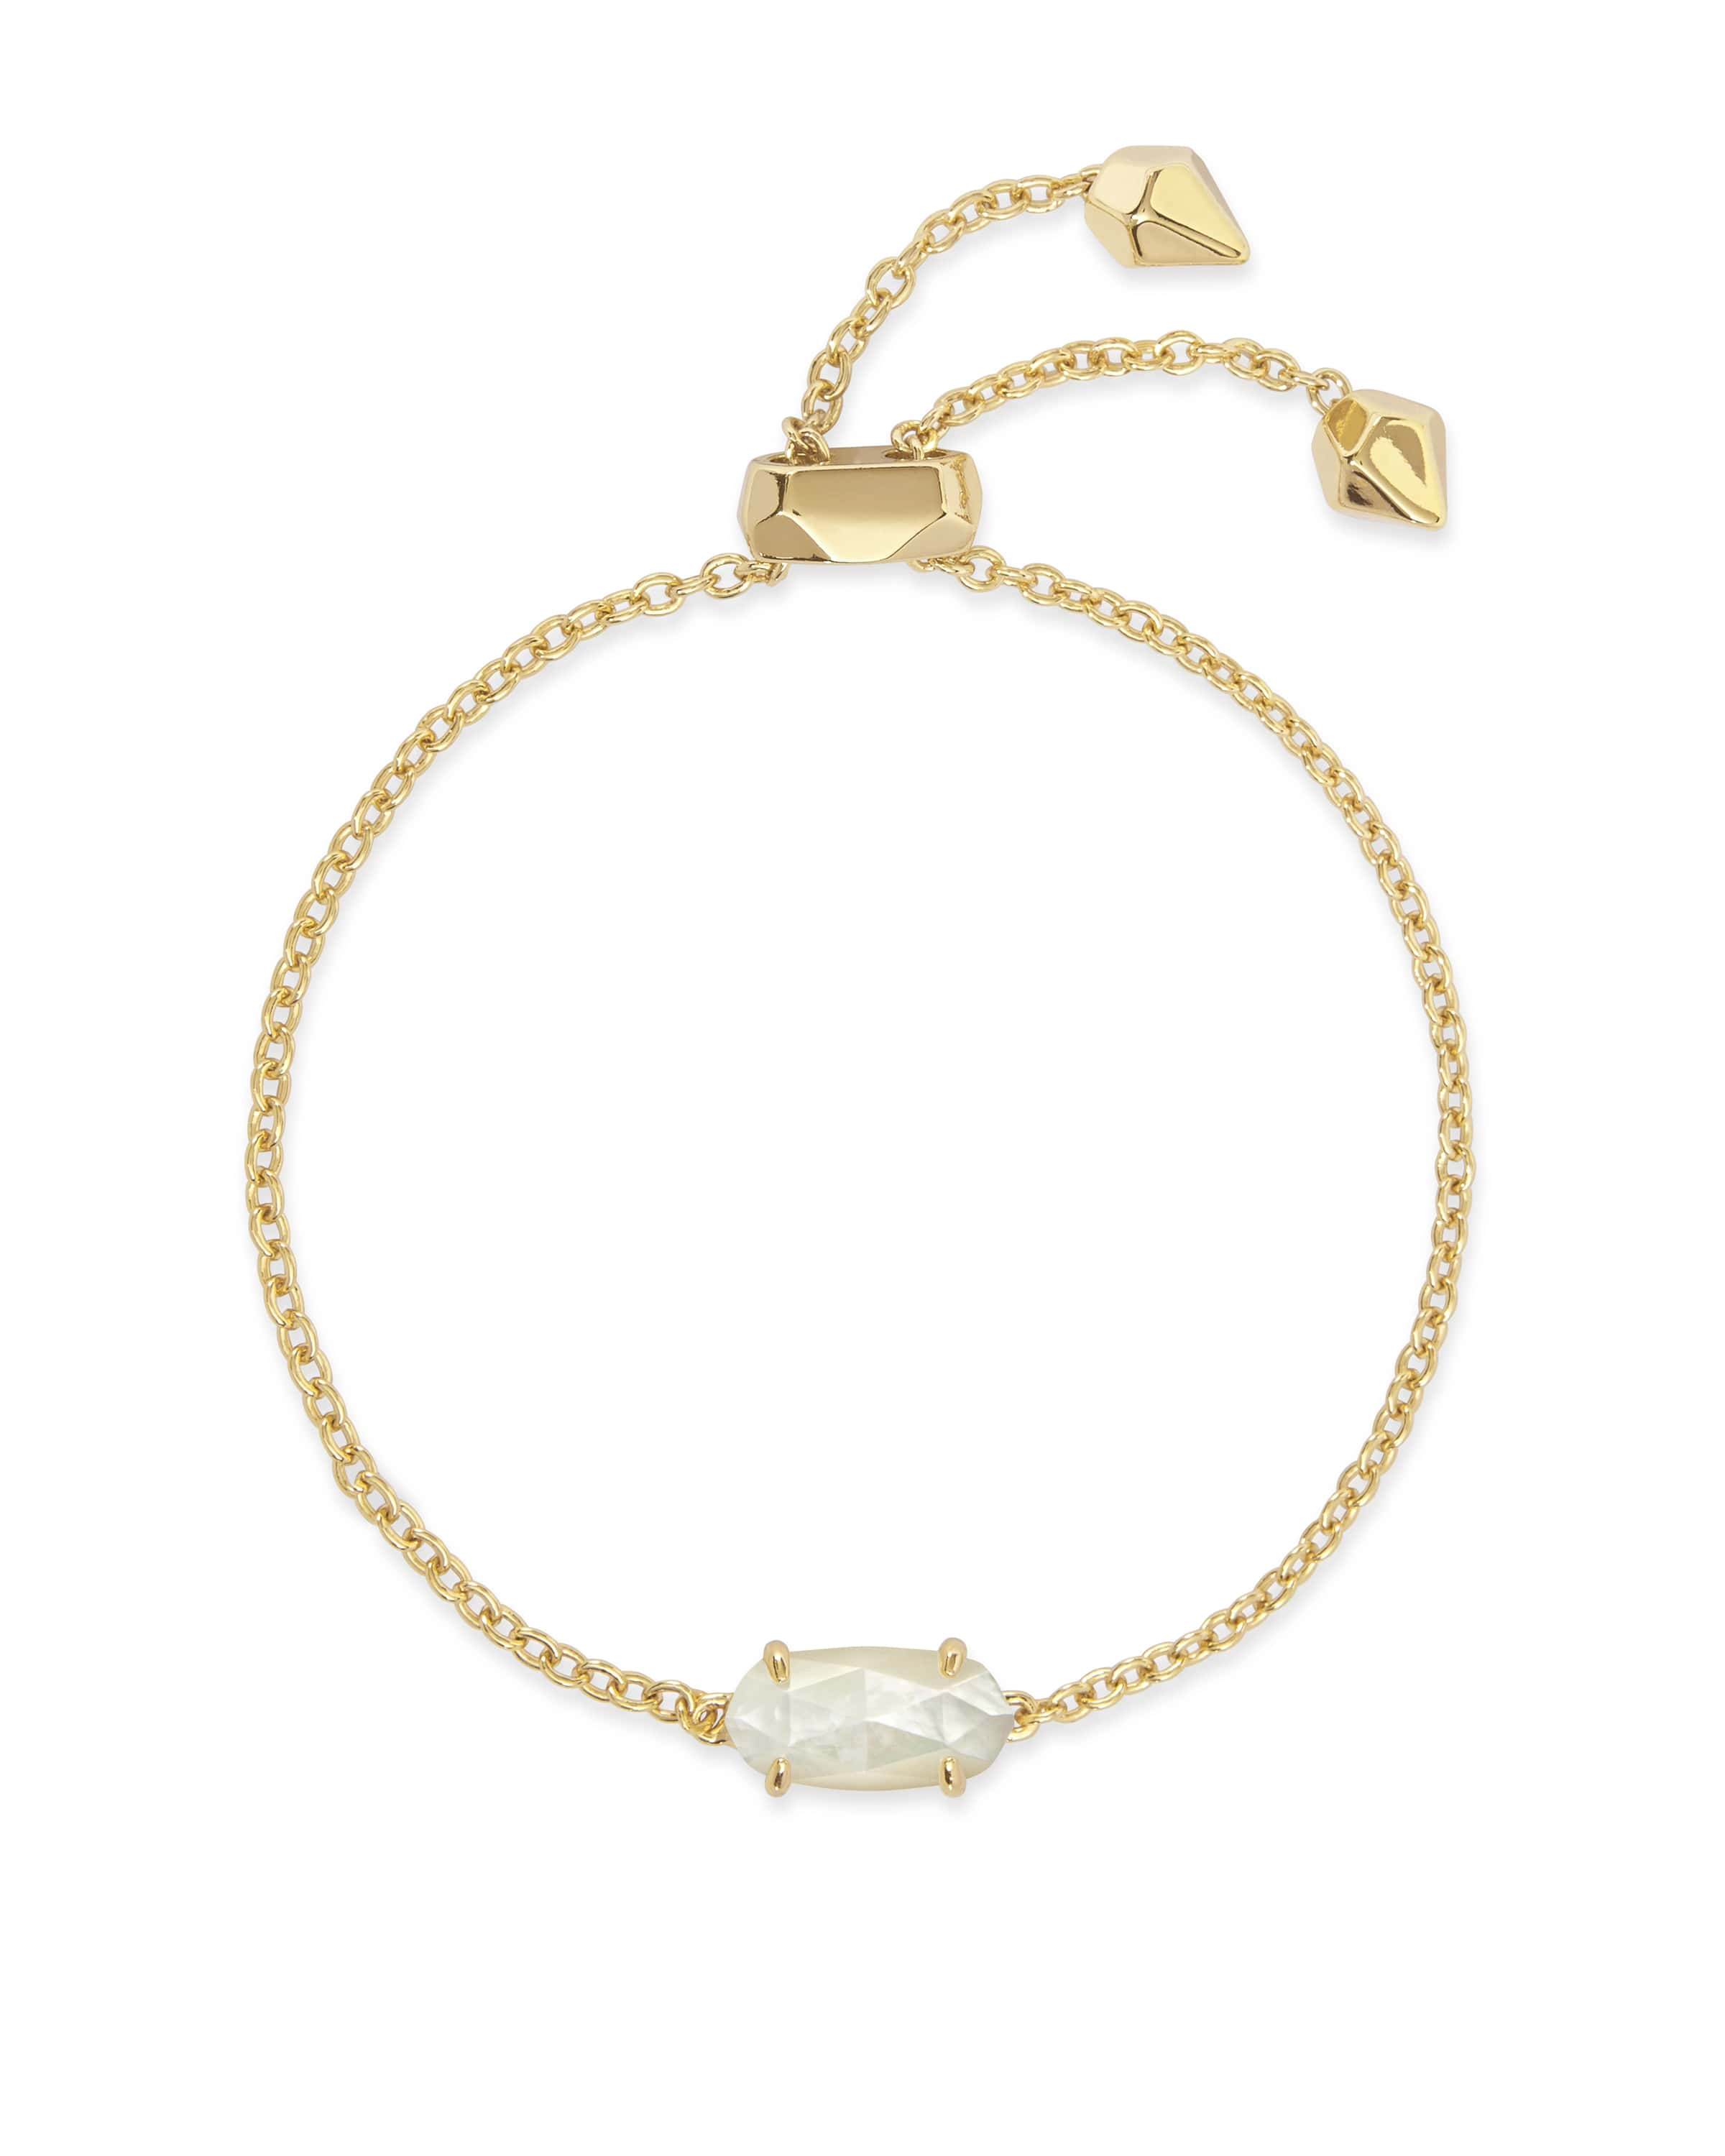 Kendra Scott Everlyne Gold Adjustable Bracelet in Ivory Mother of Pearl by Kendra Scott